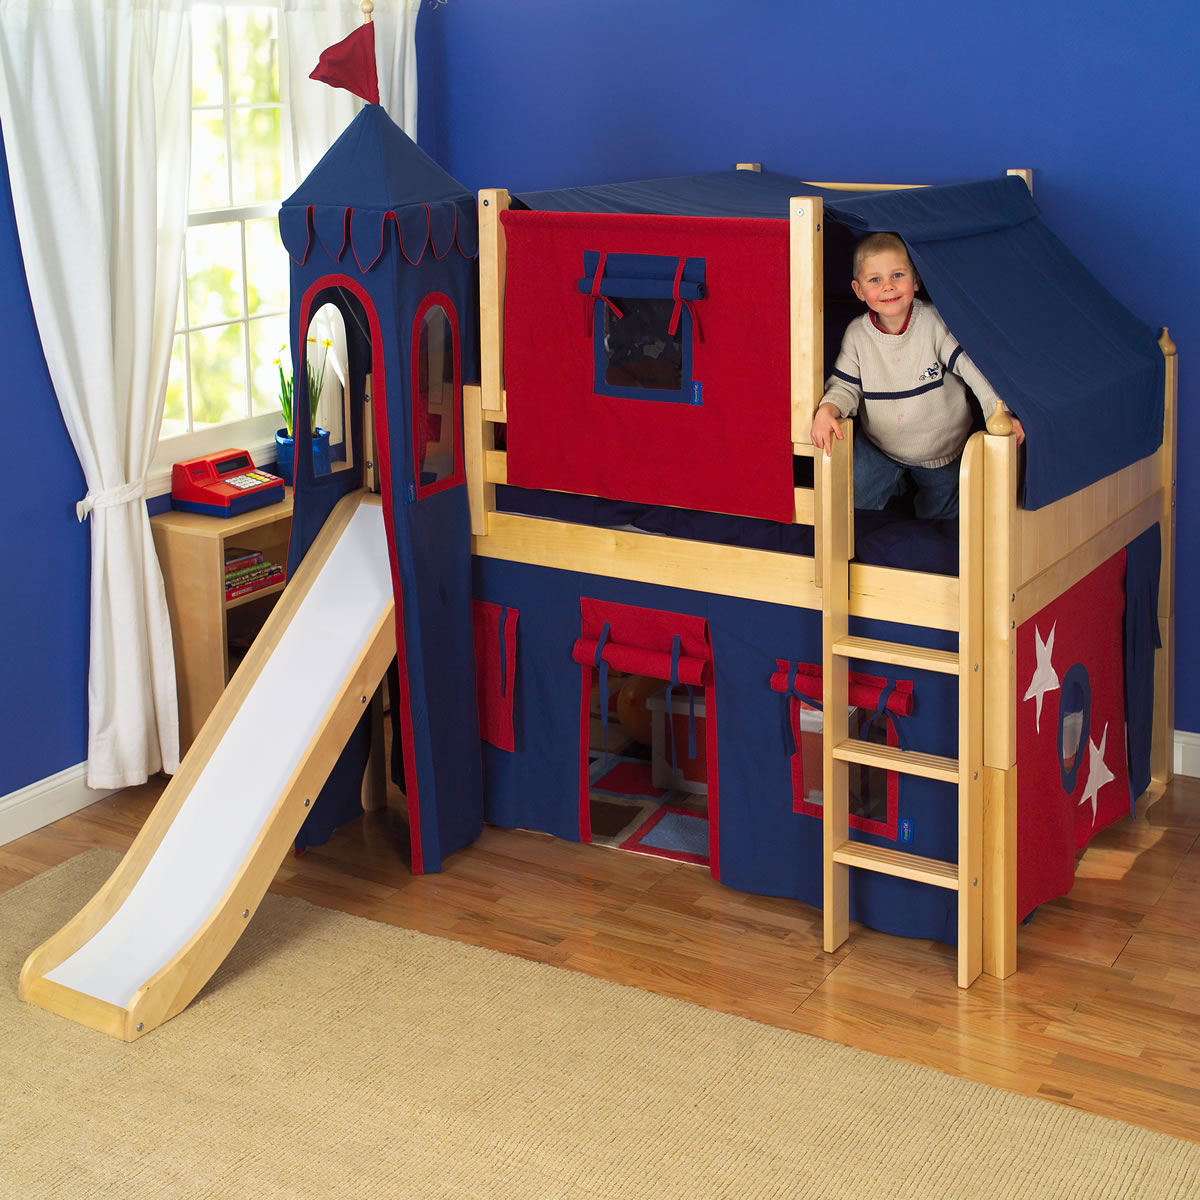 Kingu0027s Castle Low Loft Bed with Slide  sc 1 st  Bunk Beds HQ & Maxtrix Kids Kingu0027s Castle Low Loft Bed with Slide